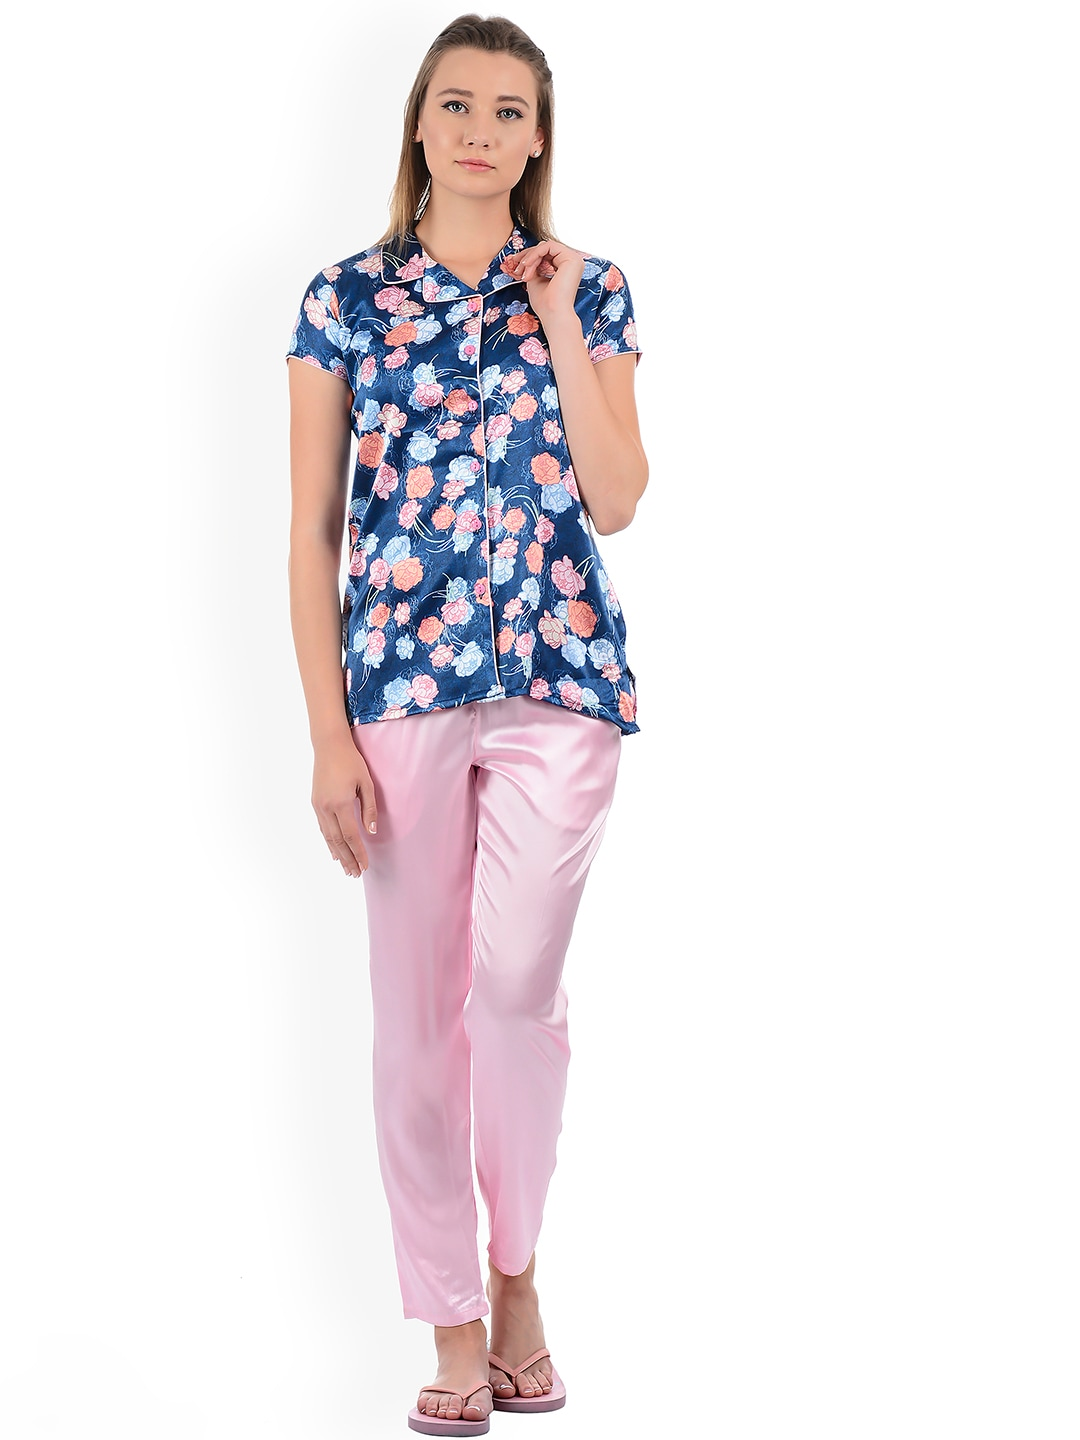 Signature By Sweet Dreams Polyester Loungewear And Nightwear - Buy  Signature By Sweet Dreams Polyester Loungewear And Nightwear online in India 547ea0e8a